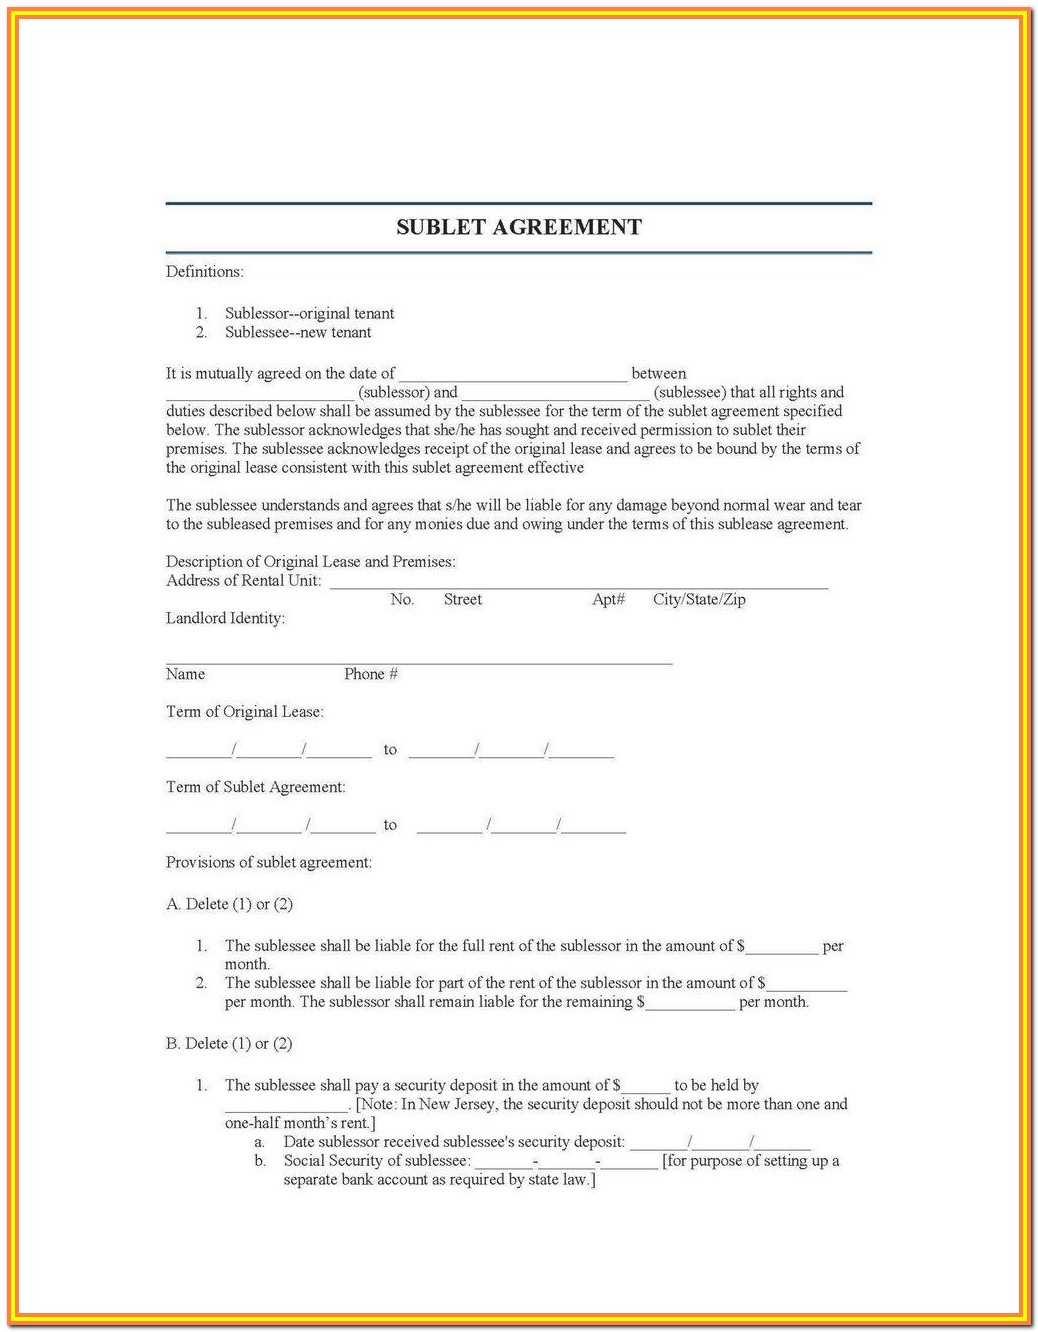 Escrow Account Agreement Format India